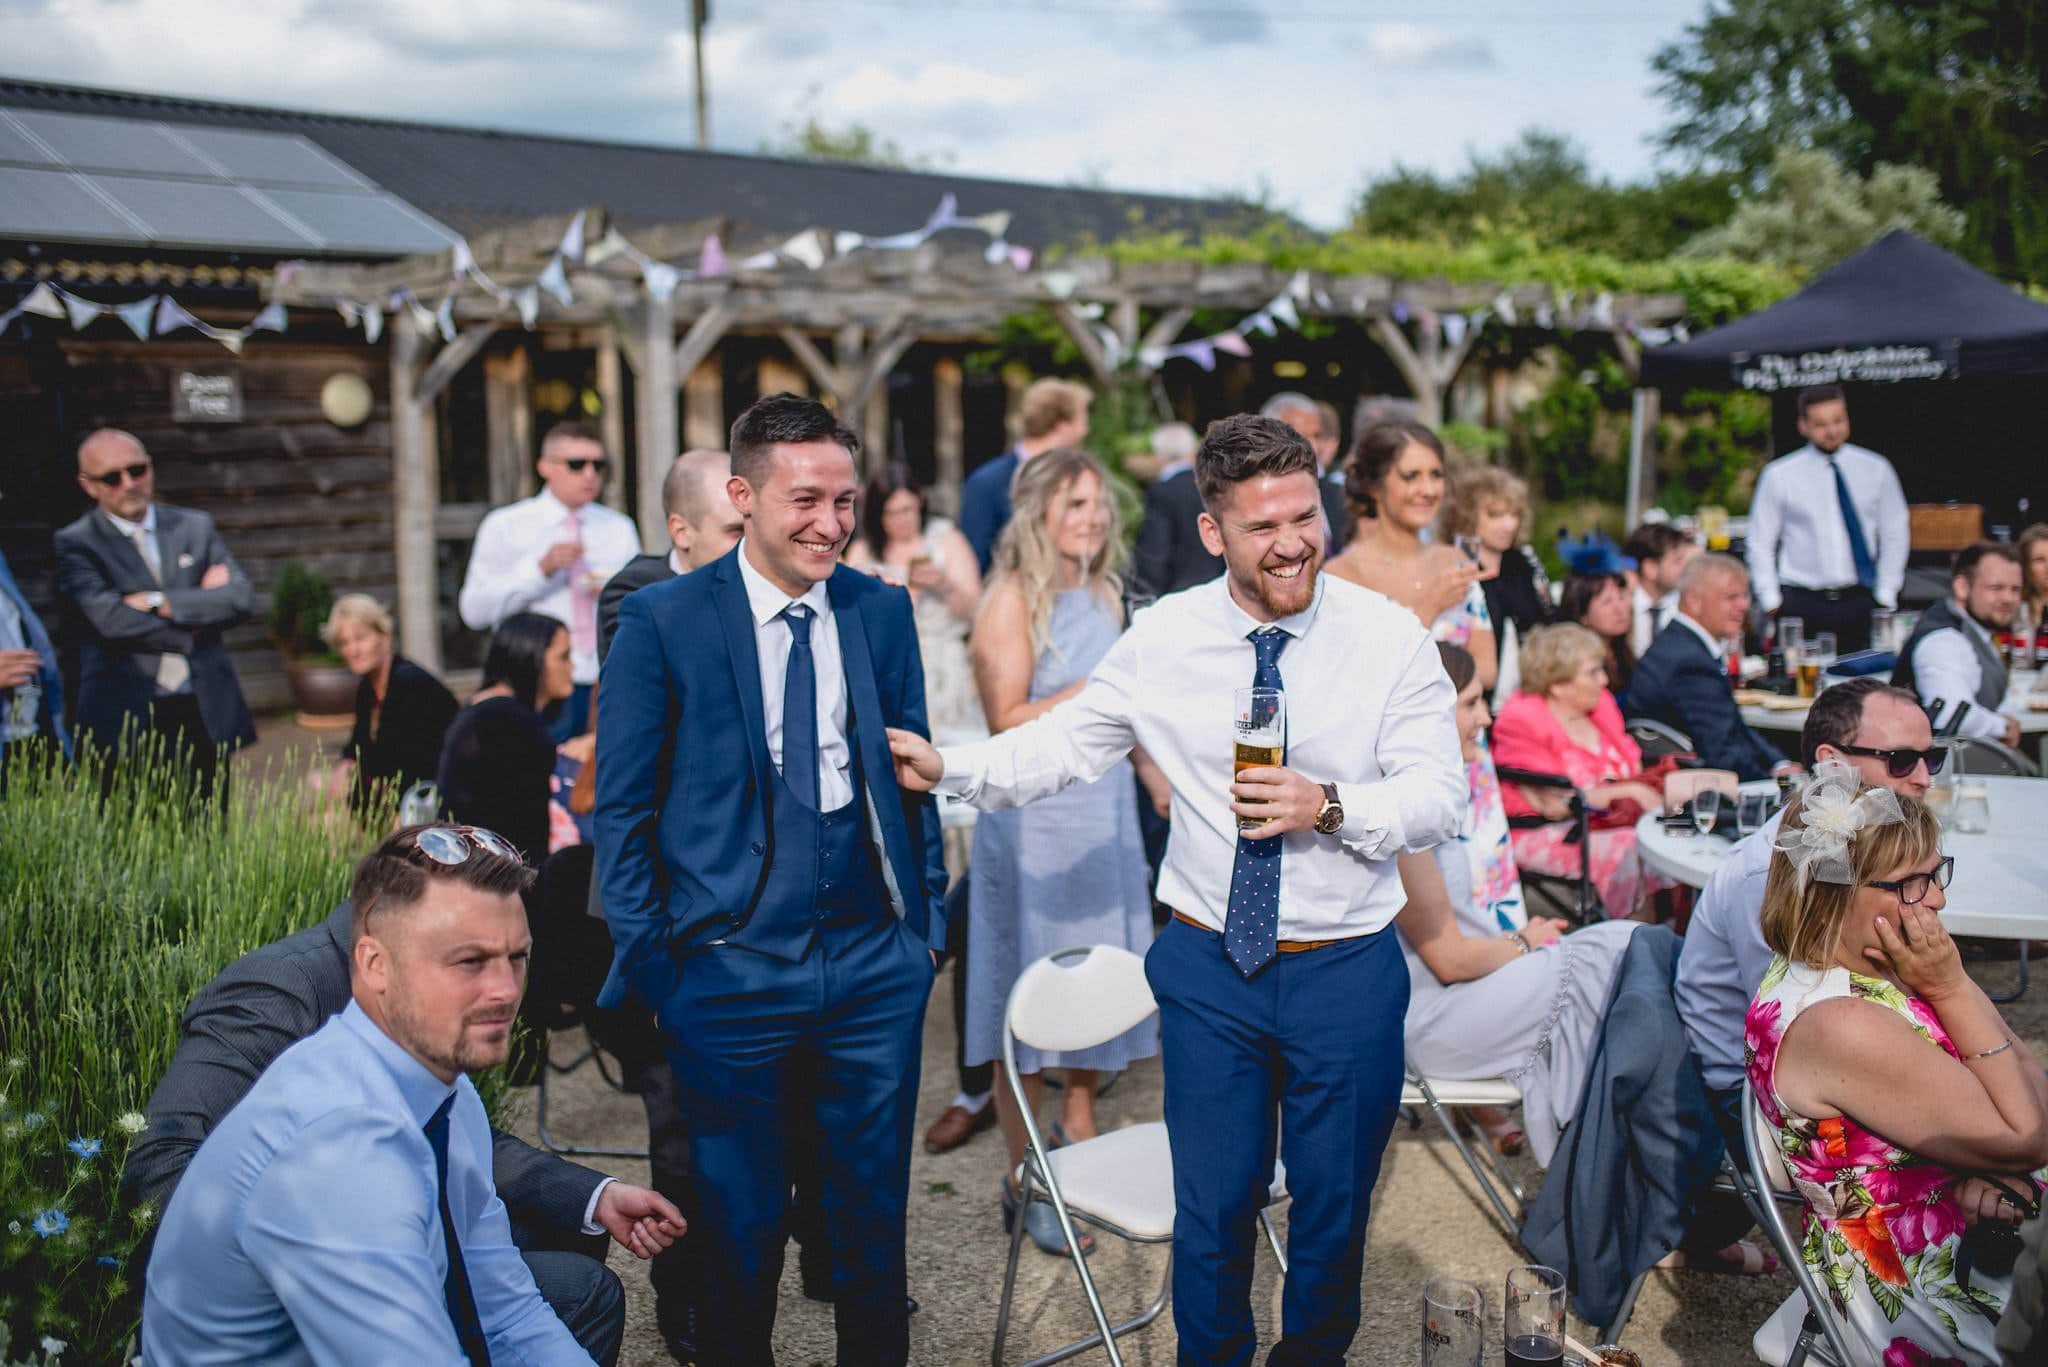 Guests laugh during wedding speeches in Fison Barn courtyard